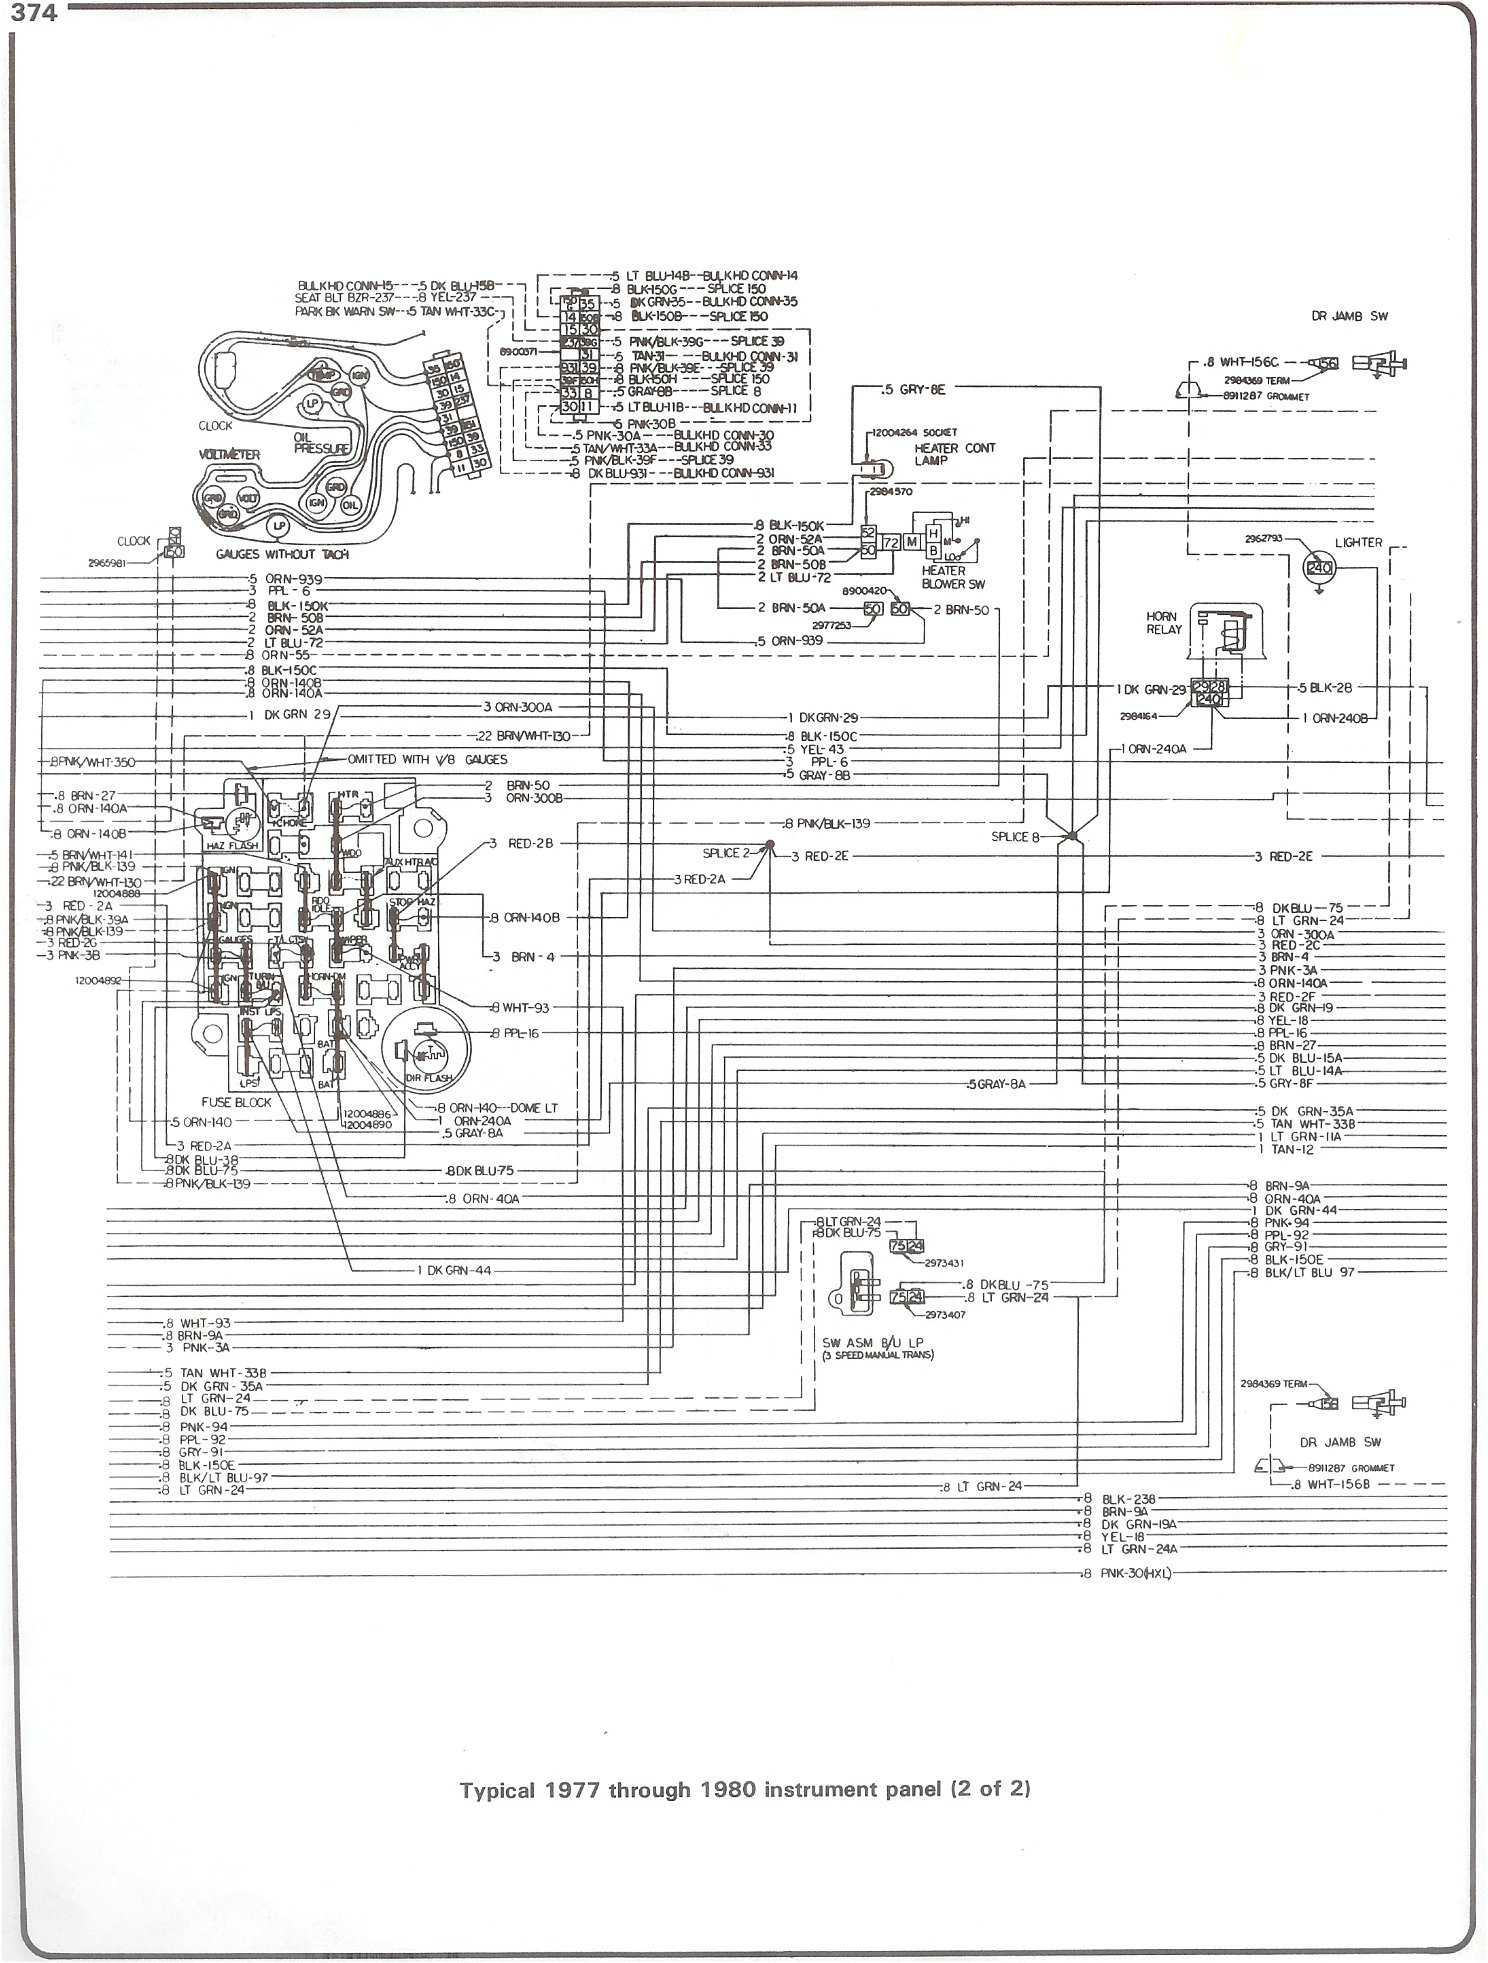 Chevy K1500 Wiring Diagram | Wiring Diagram on dodge dart headlight wiring diagram, dodge ram fan clutch wiring diagram, 1996 dodge ram wiring diagram, dodge caliber headlight wiring diagram, dodge ram light wiring diagram, dodge ram headlight sensor, dodge ram headlight housing diagram, dodge ram transmission wiring diagram, dodge ram rear brakes diagram, dodge ram headlight circuit breaker, dodge ram alternator diagram, dodge ram headlight relay, dodge ram starter wiring diagram, dodge ram power window wiring diagram, dodge ram 2500 wiring diagram, dodge ram engine wiring diagram, 1989 ford f-250 wiring diagram, 2011 dodge ram heating diagram, dodge ram spark plug wiring diagram, dodge ram 3500 wiring diagram,